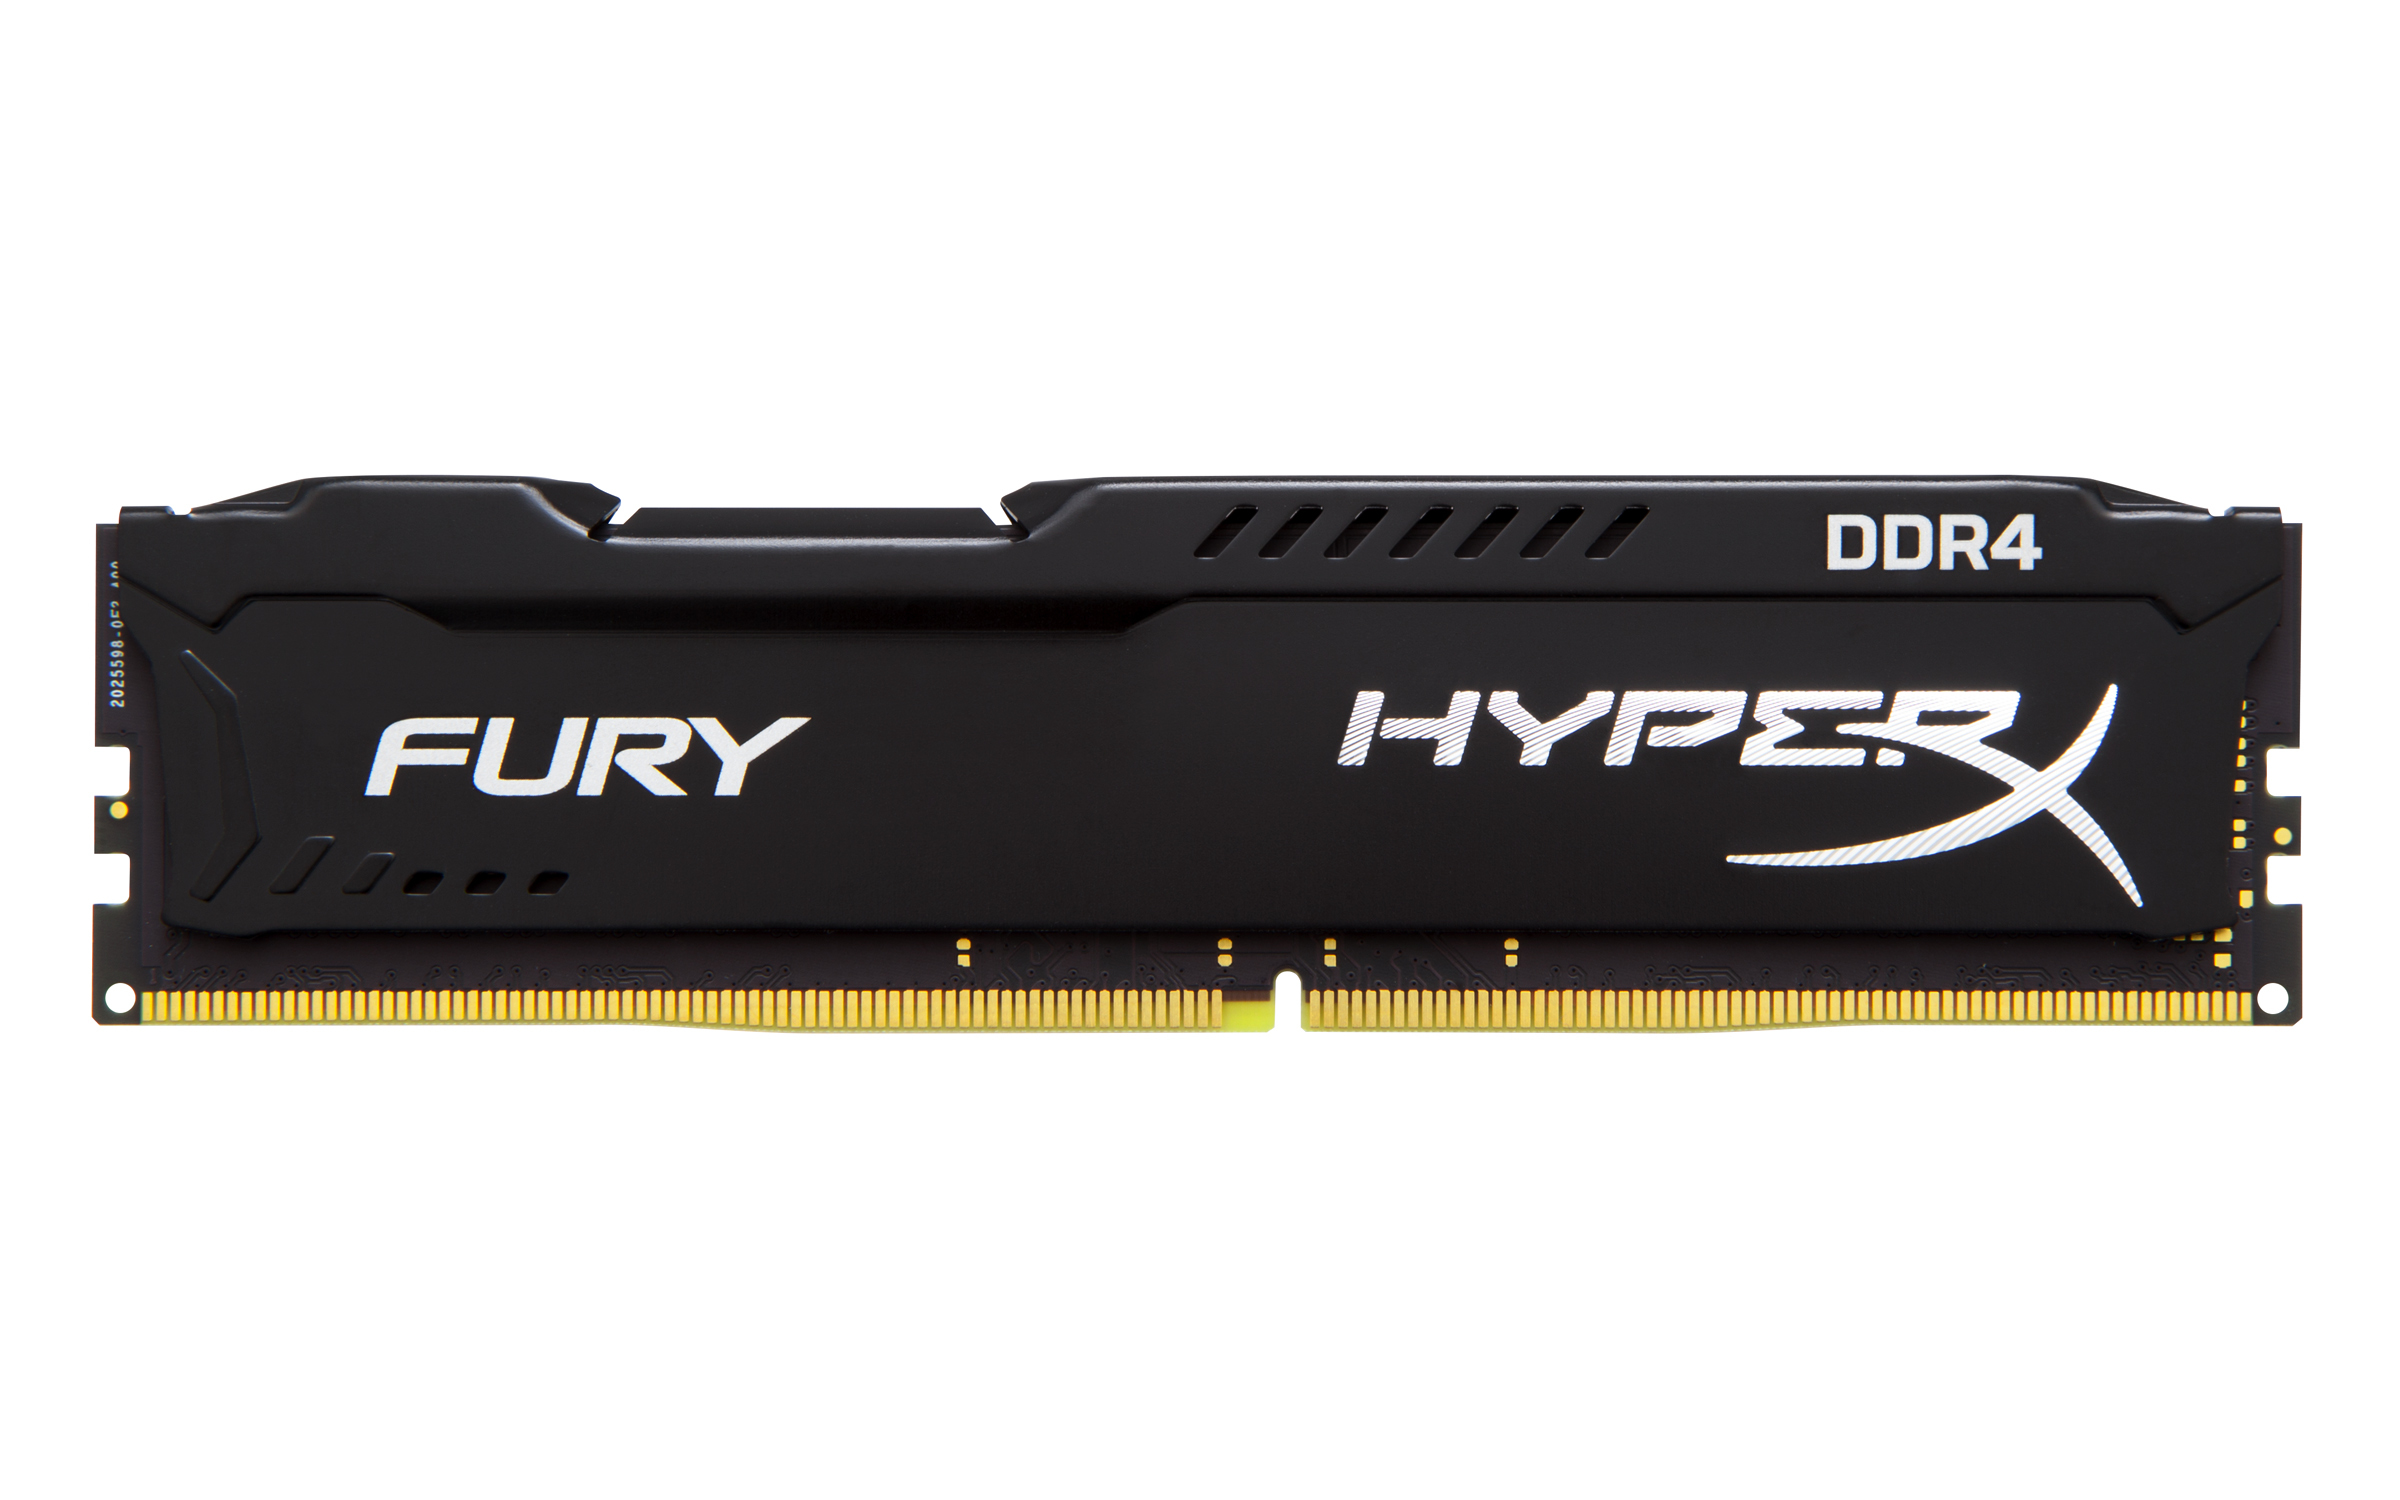 Ram Kingston 8GB 2133Mhz DDR4 CL14 DIMM Fury HyperX Black